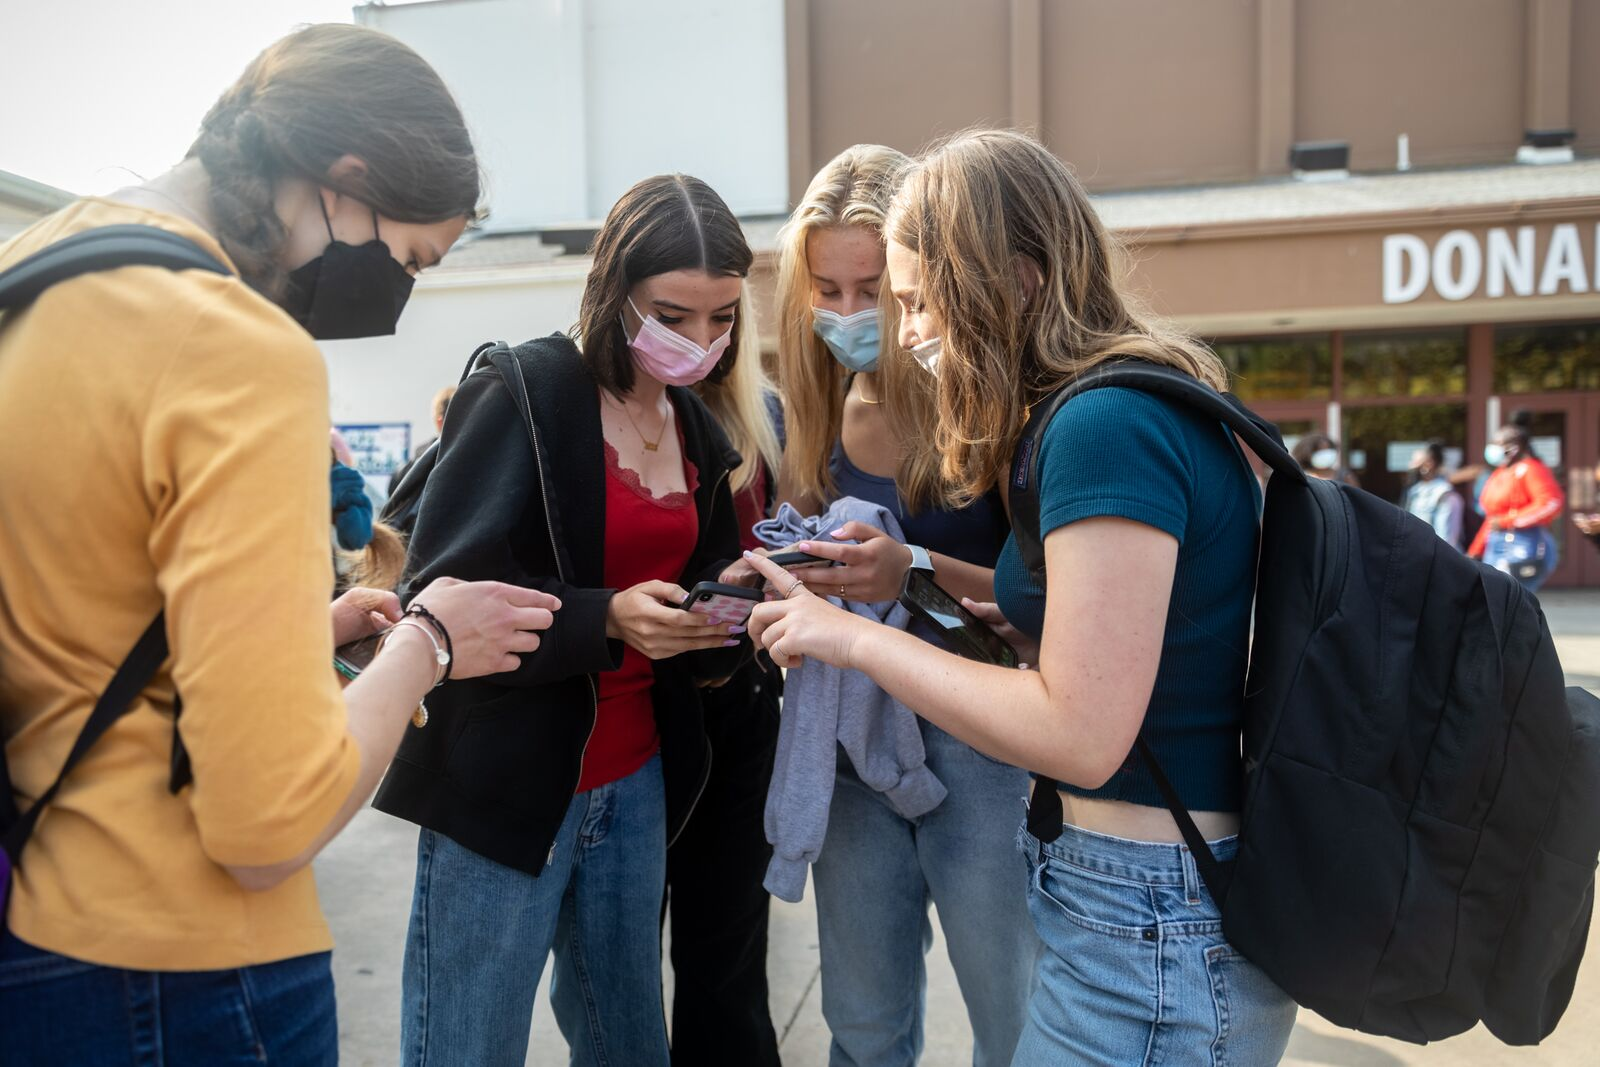 A group of Berkeley High School students compare class schedules  before school begins on August 16, 2021. Credit: Kelly Sullivan